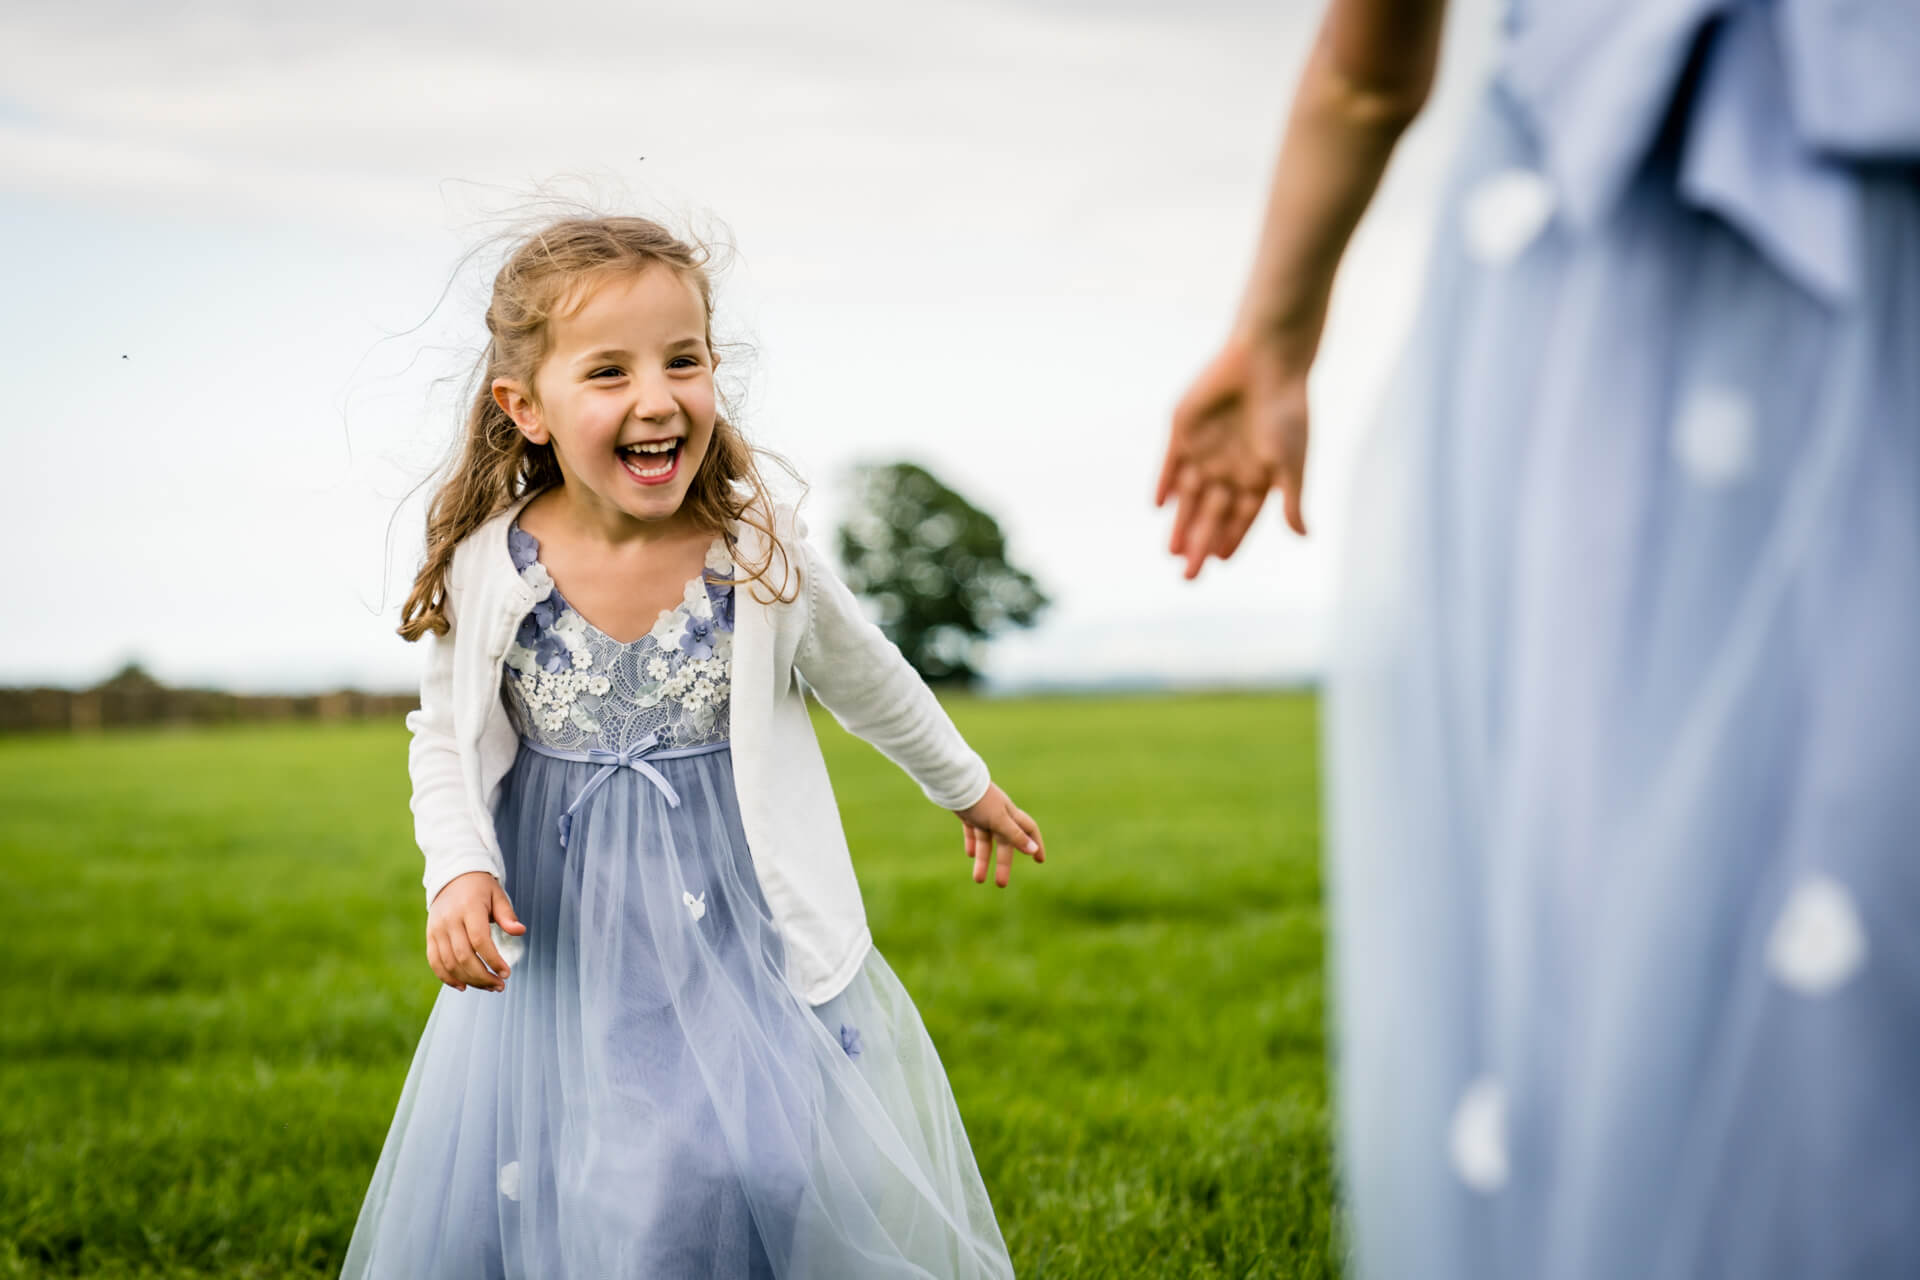 flower girl running after her sister in a field